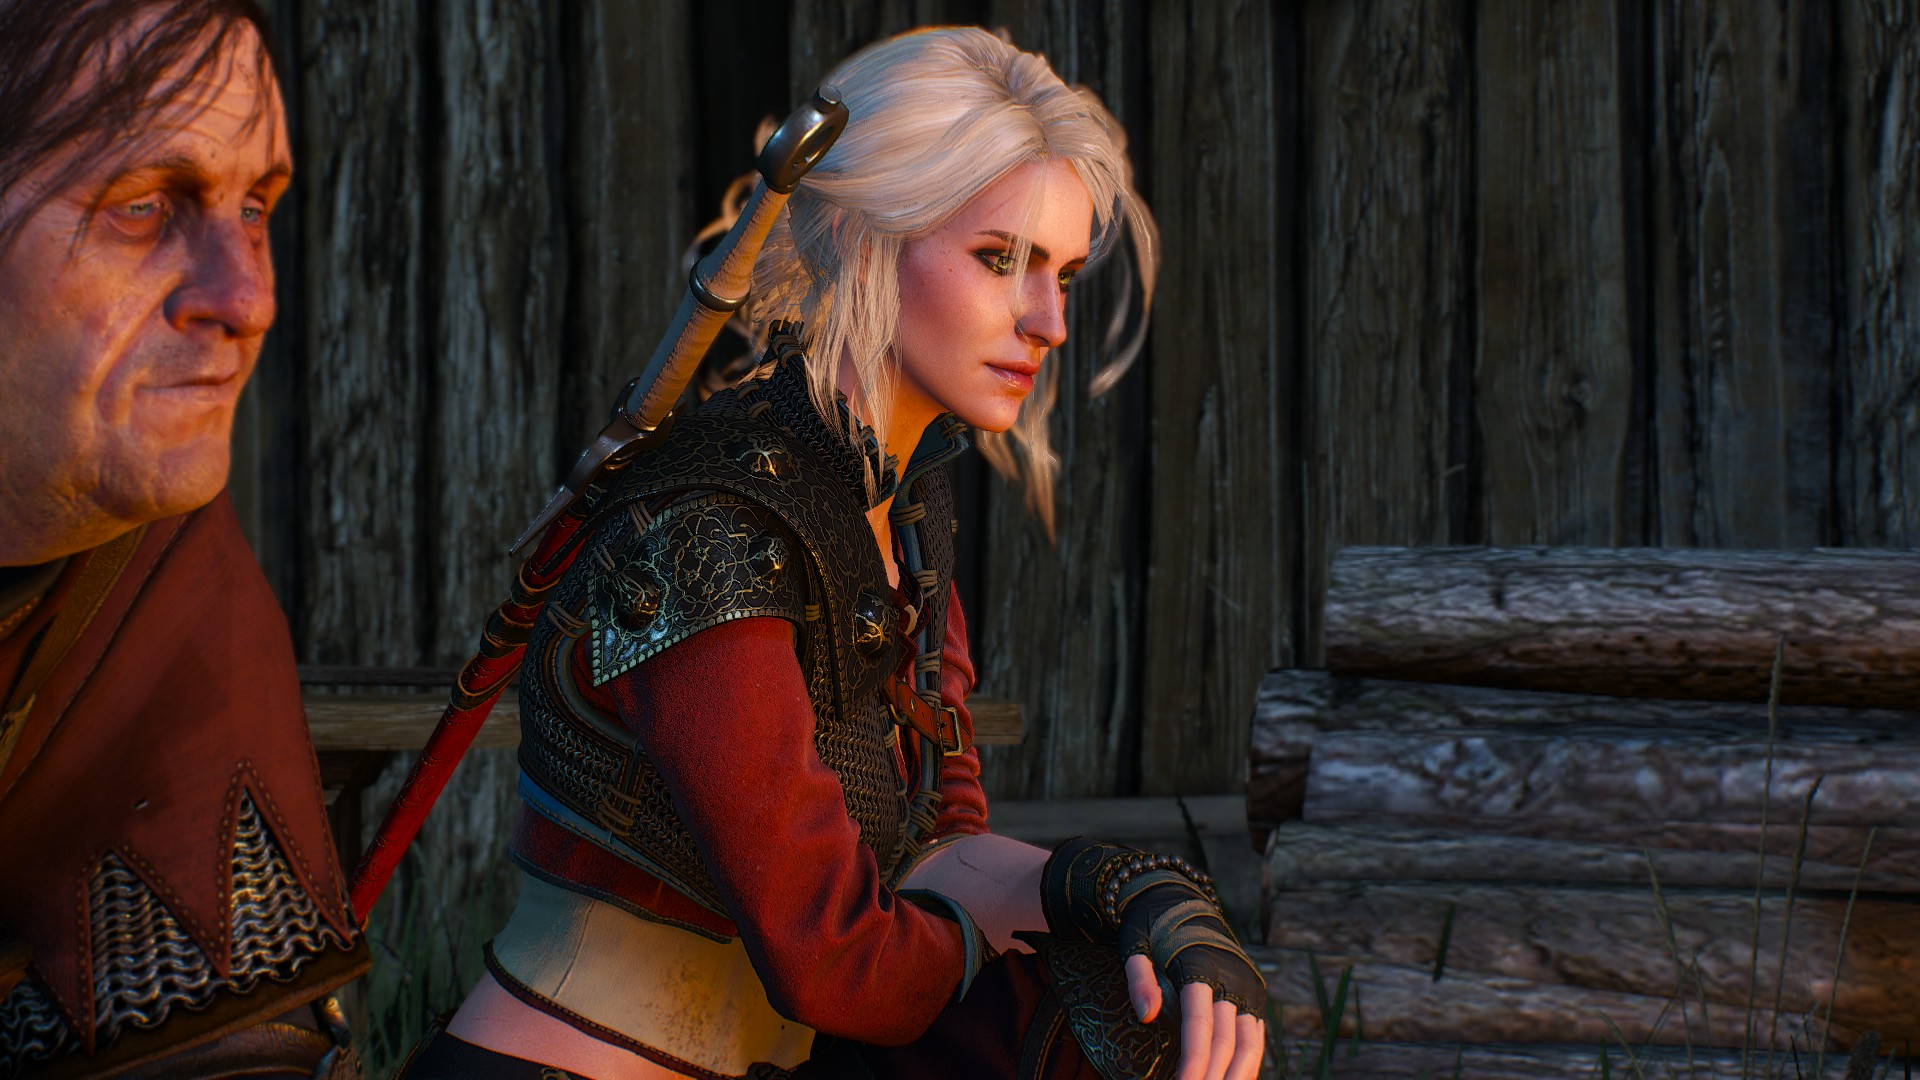 20180929133941_1.jpg - Witcher 3: Wild Hunt, the